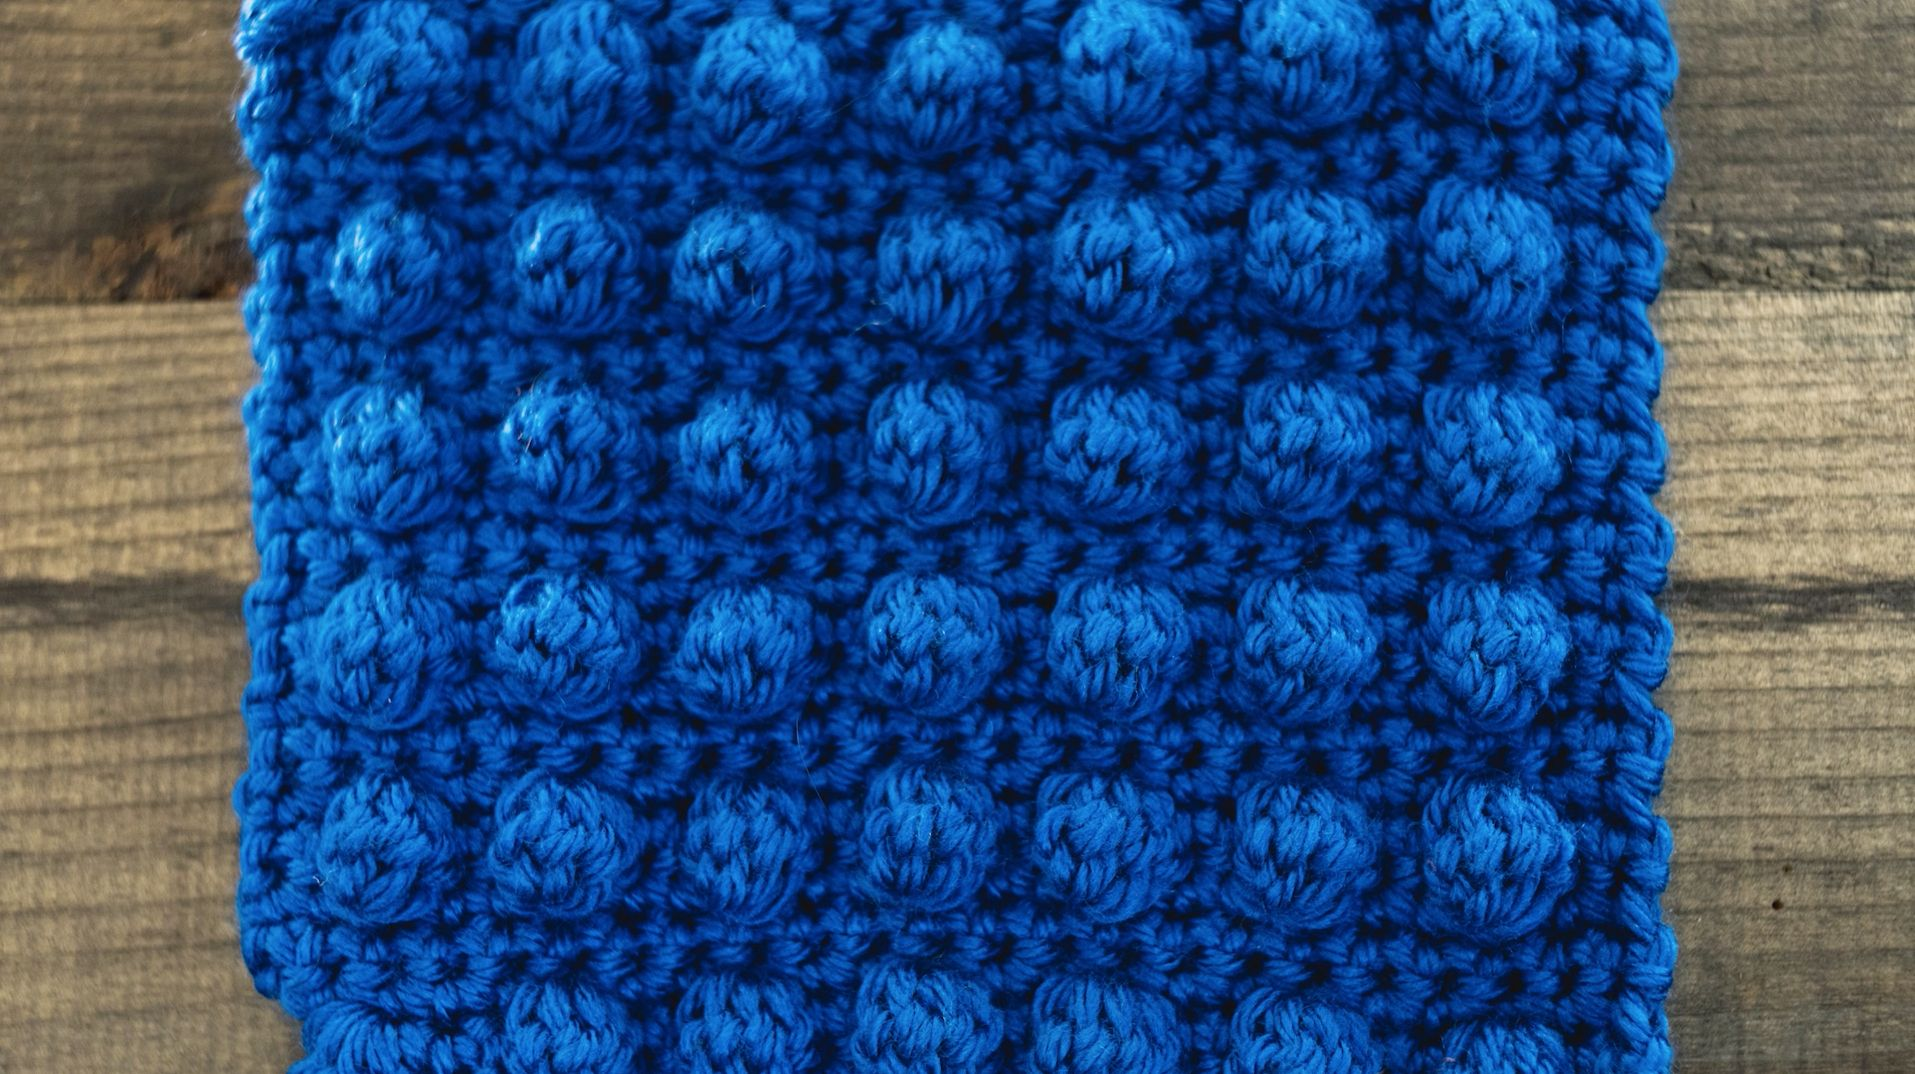 How to Knit a Bobble Stitch | You are not going to want to miss out on this super easy-to-follow crochet video! Learn all about the bobble stitch and how easy it is to make.